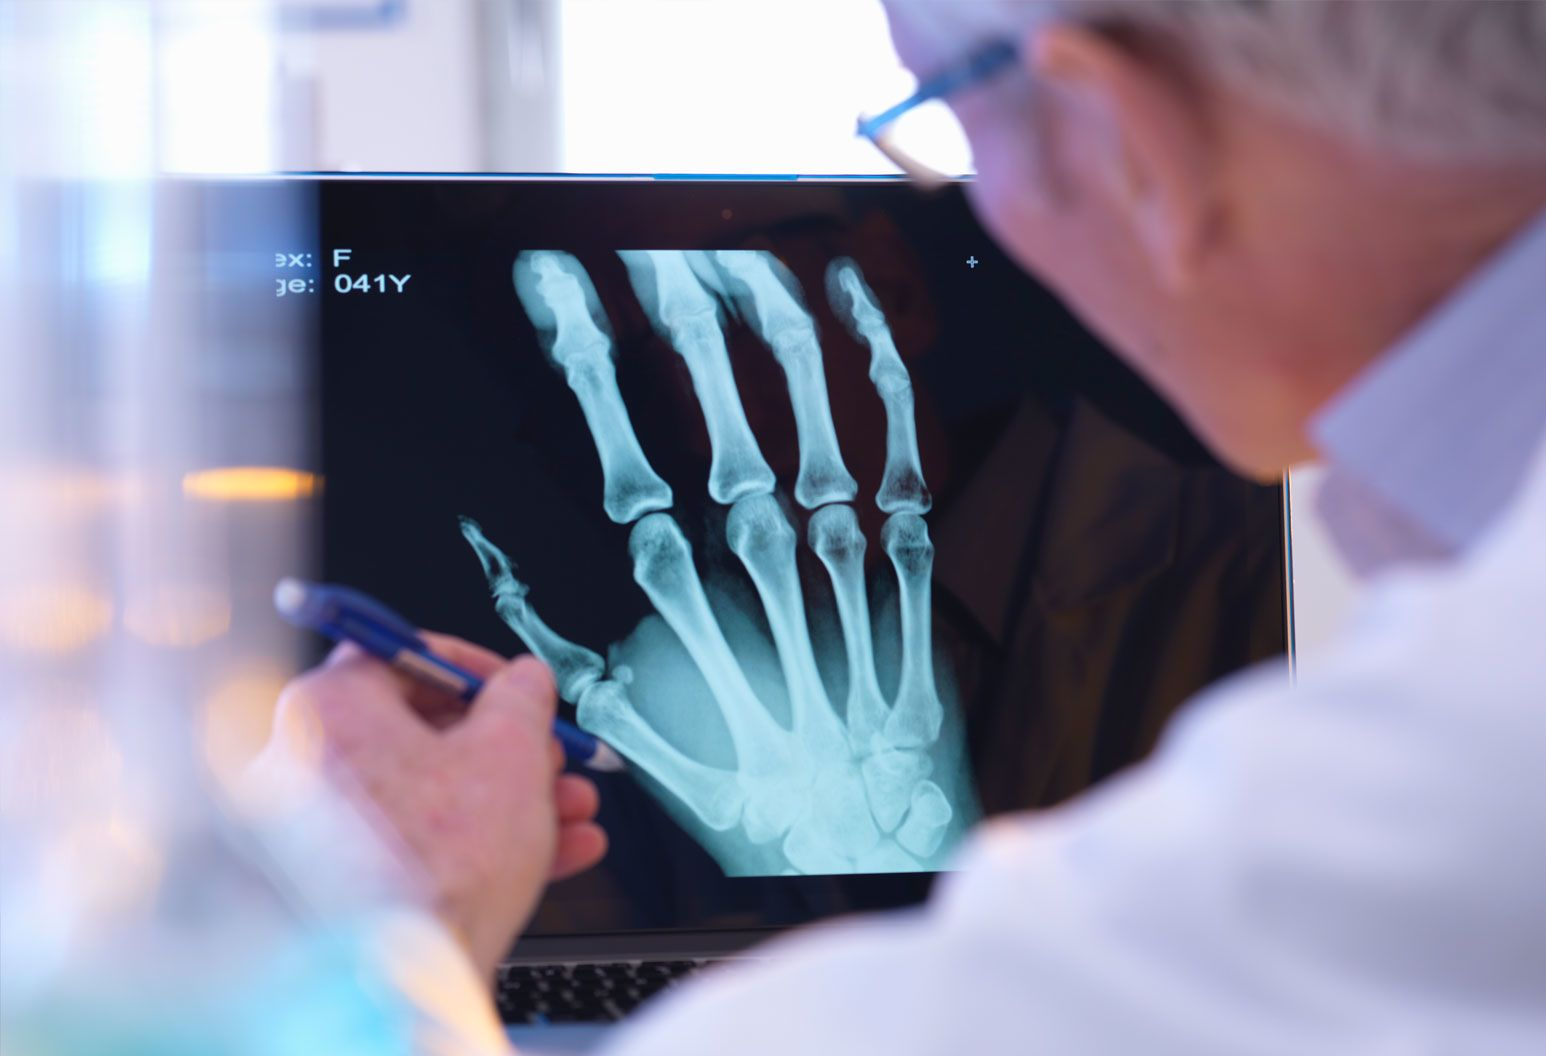 A doctor wearing a white lab coat looks at an x-ray of a hand on a screen. He is pointing to a part of the bone with a pen.